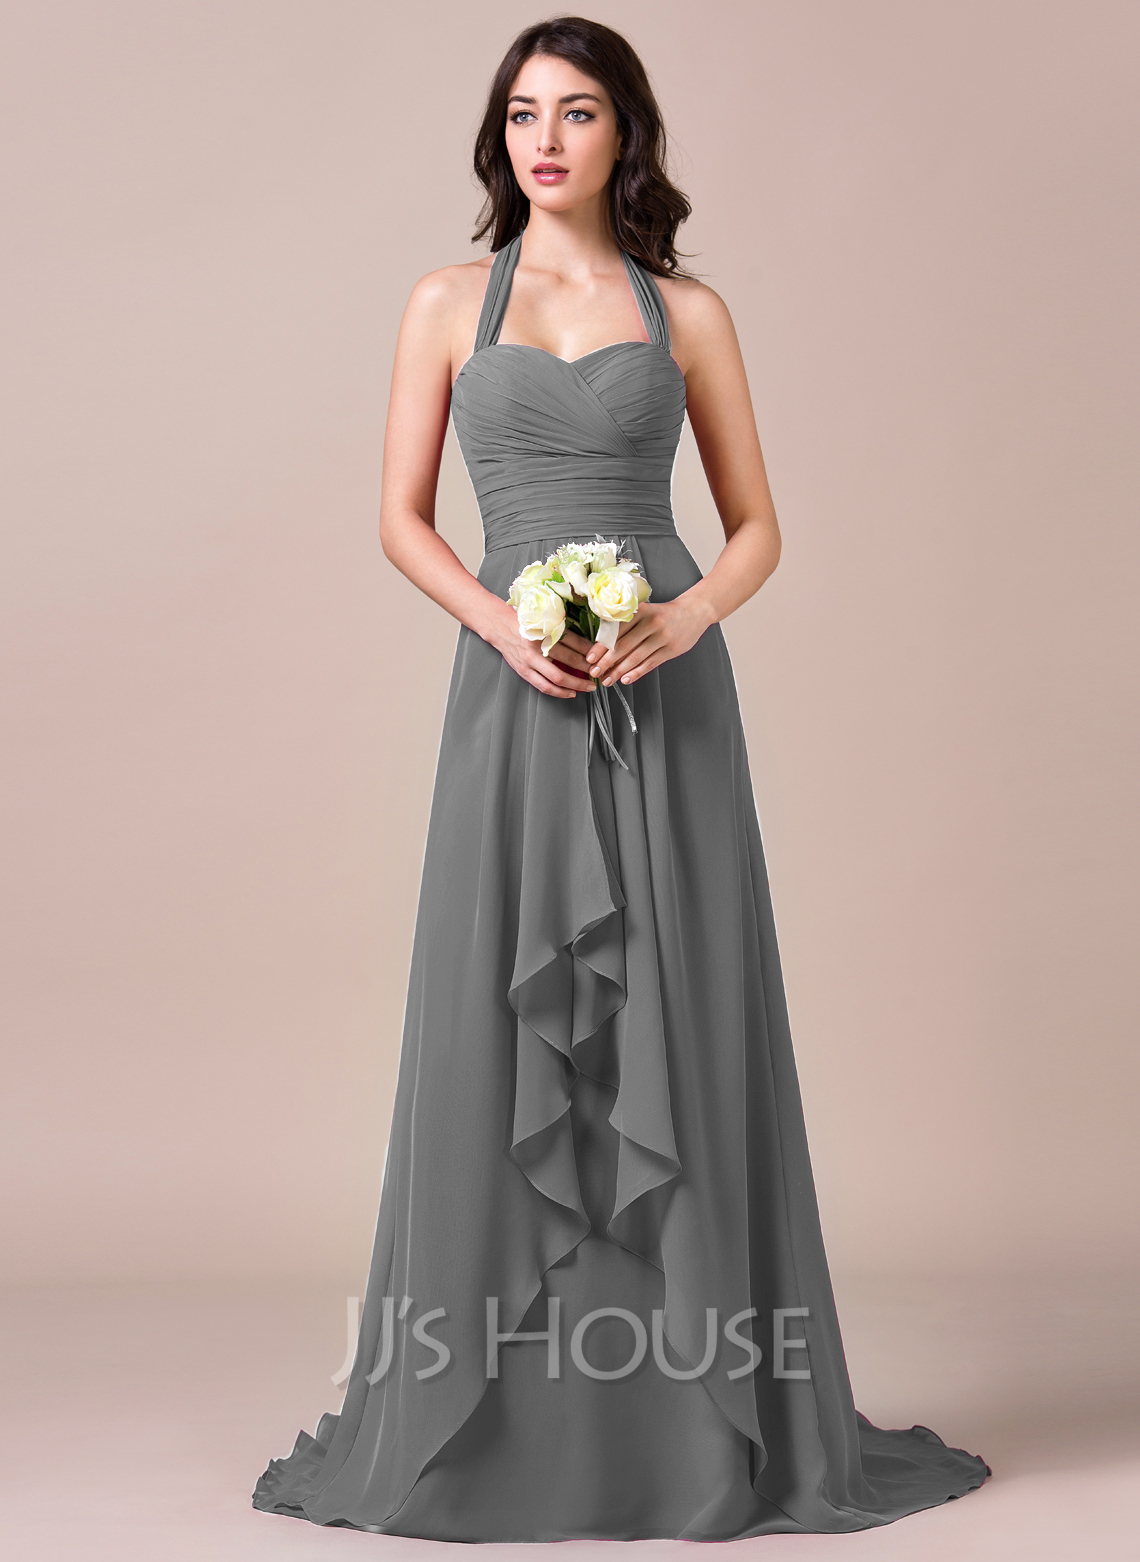 A lineprincess halter sweep train chiffon bridesmaid dress with a lineprincess halter sweep train chiffon bridesmaid dress with bows loading zoom ombrellifo Gallery